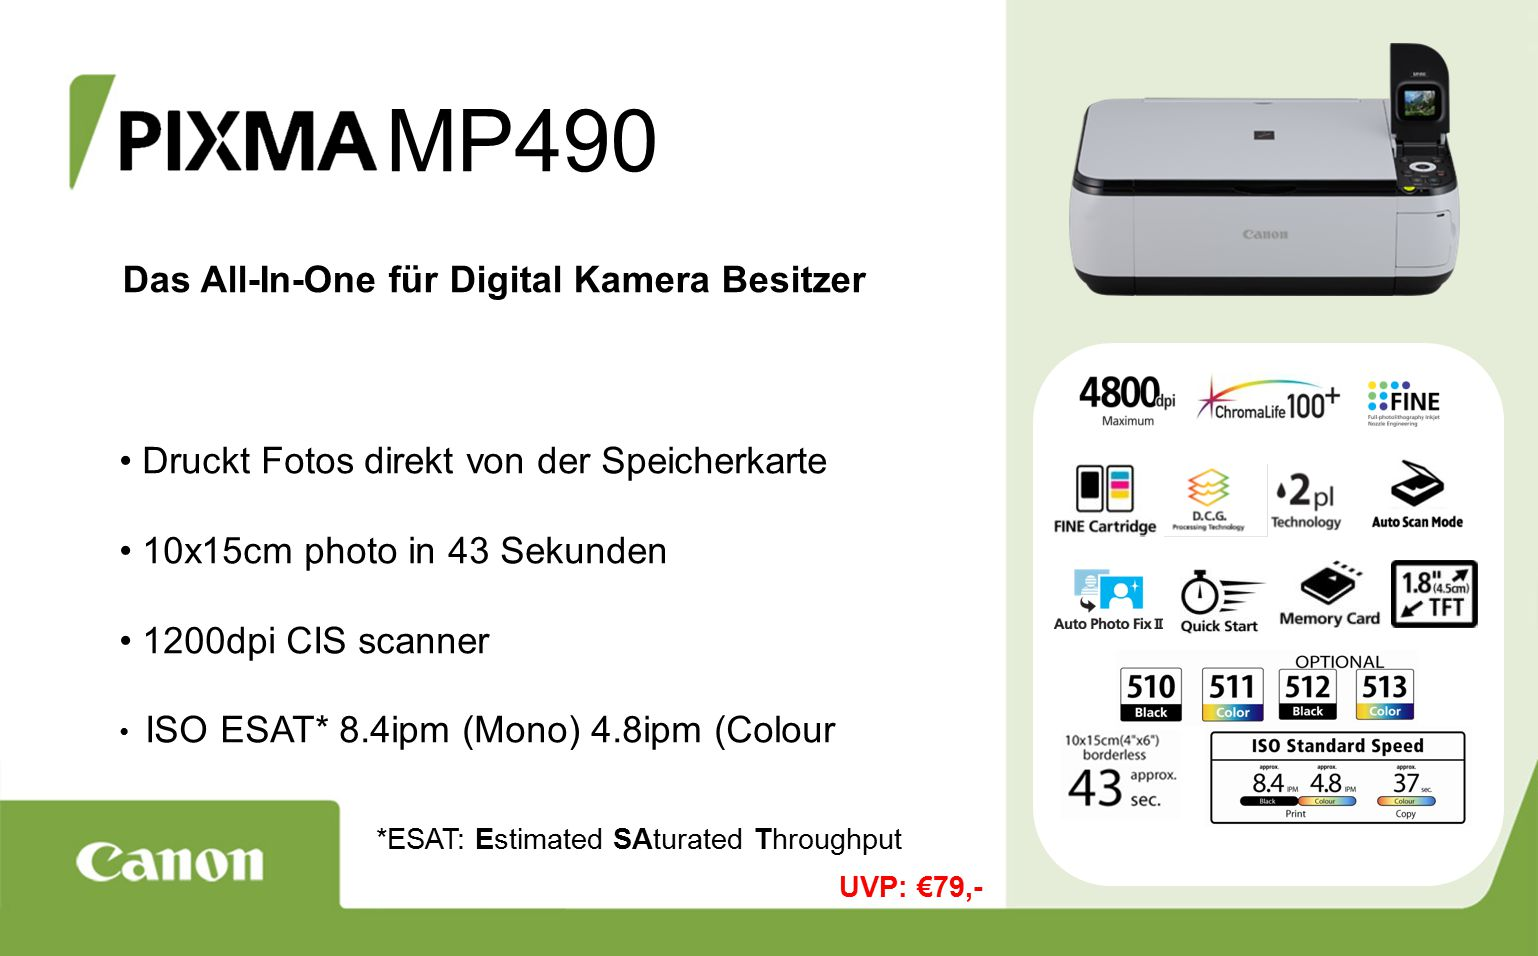 MP490 Das All-In-One für Digital Kamera Besitzer Druckt Fotos direkt von der Speicherkarte 10x15cm photo in 43 Sekunden 1200dpi CIS scanner ISO ESAT* 8.4ipm (Mono) 4.8ipm (Colour *ESAT: Estimated SAturated Throughput UVP: €79,-